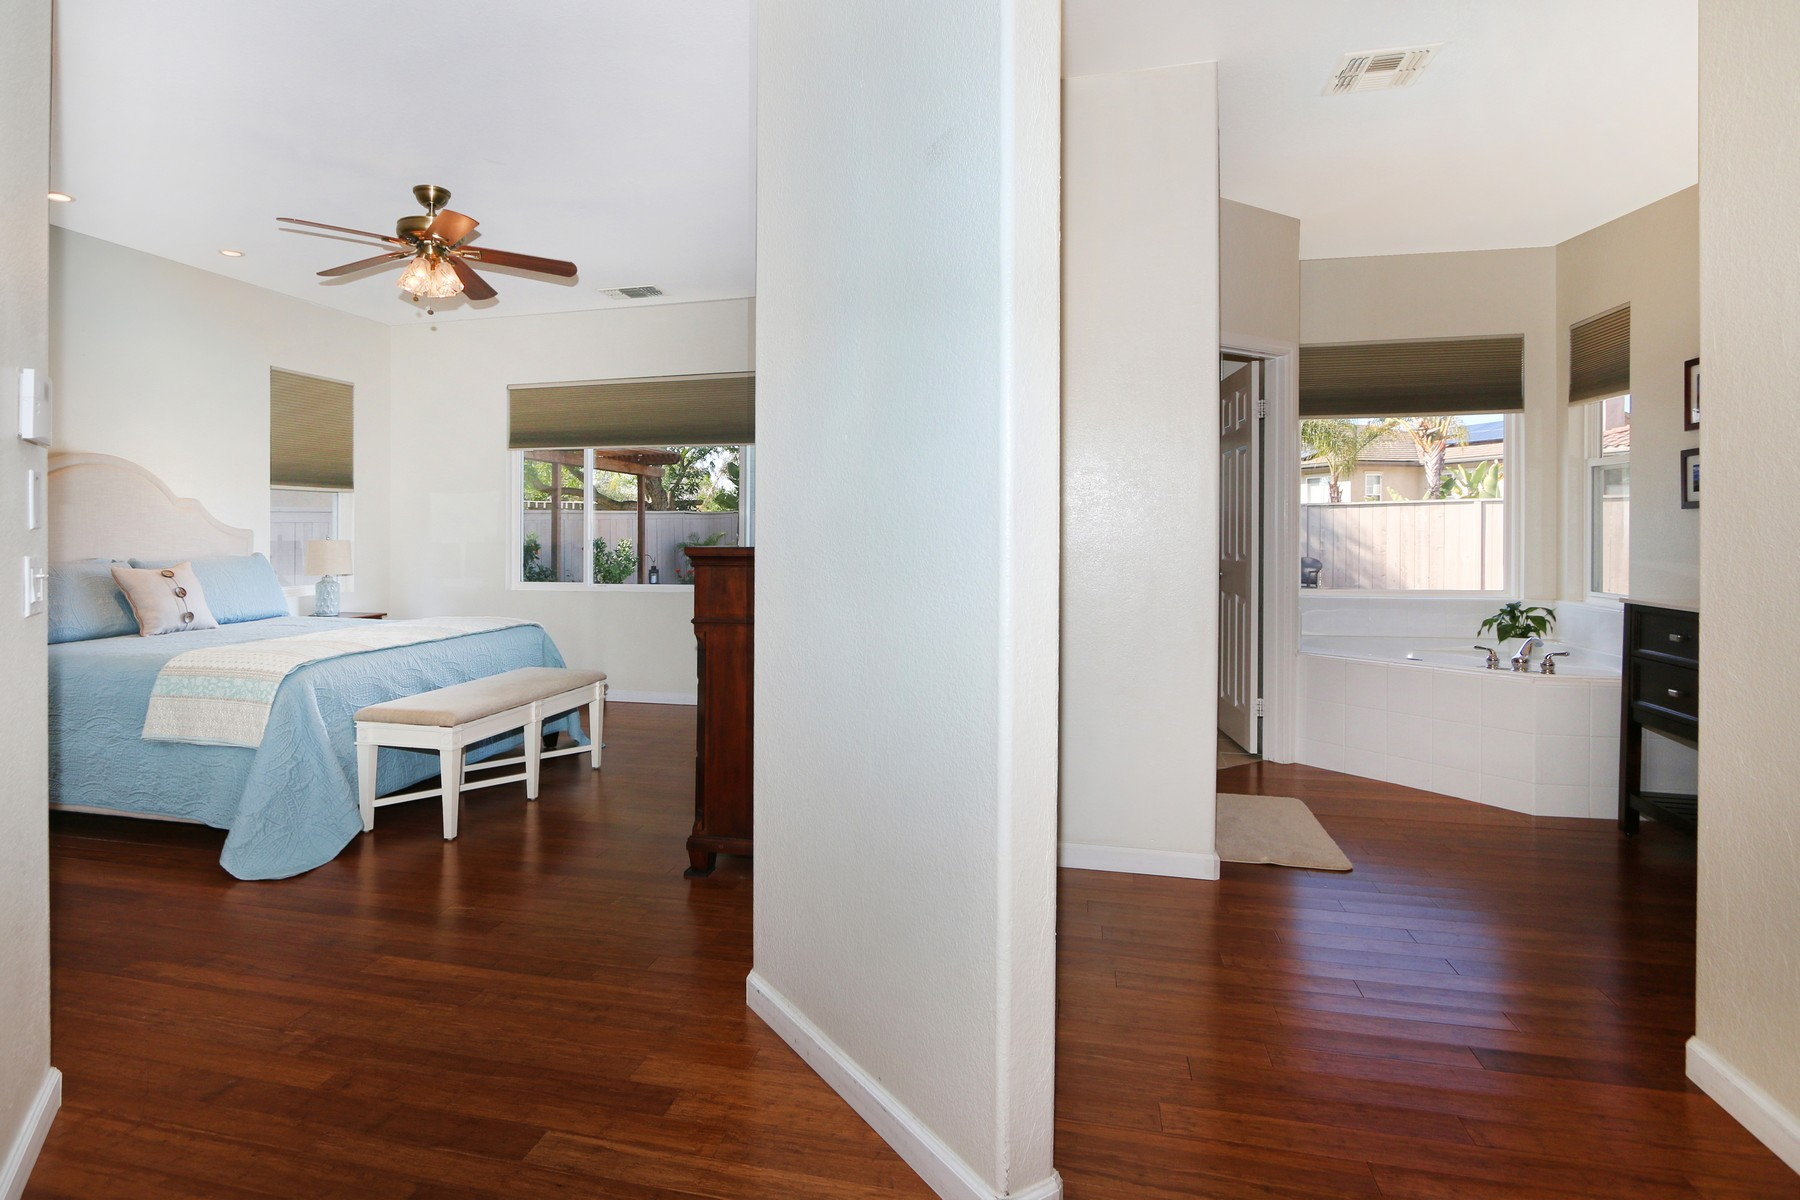 Additional photo for property listing at Heritage Park 1304 Lindsay Street, Chula Vista, California 91913 United States